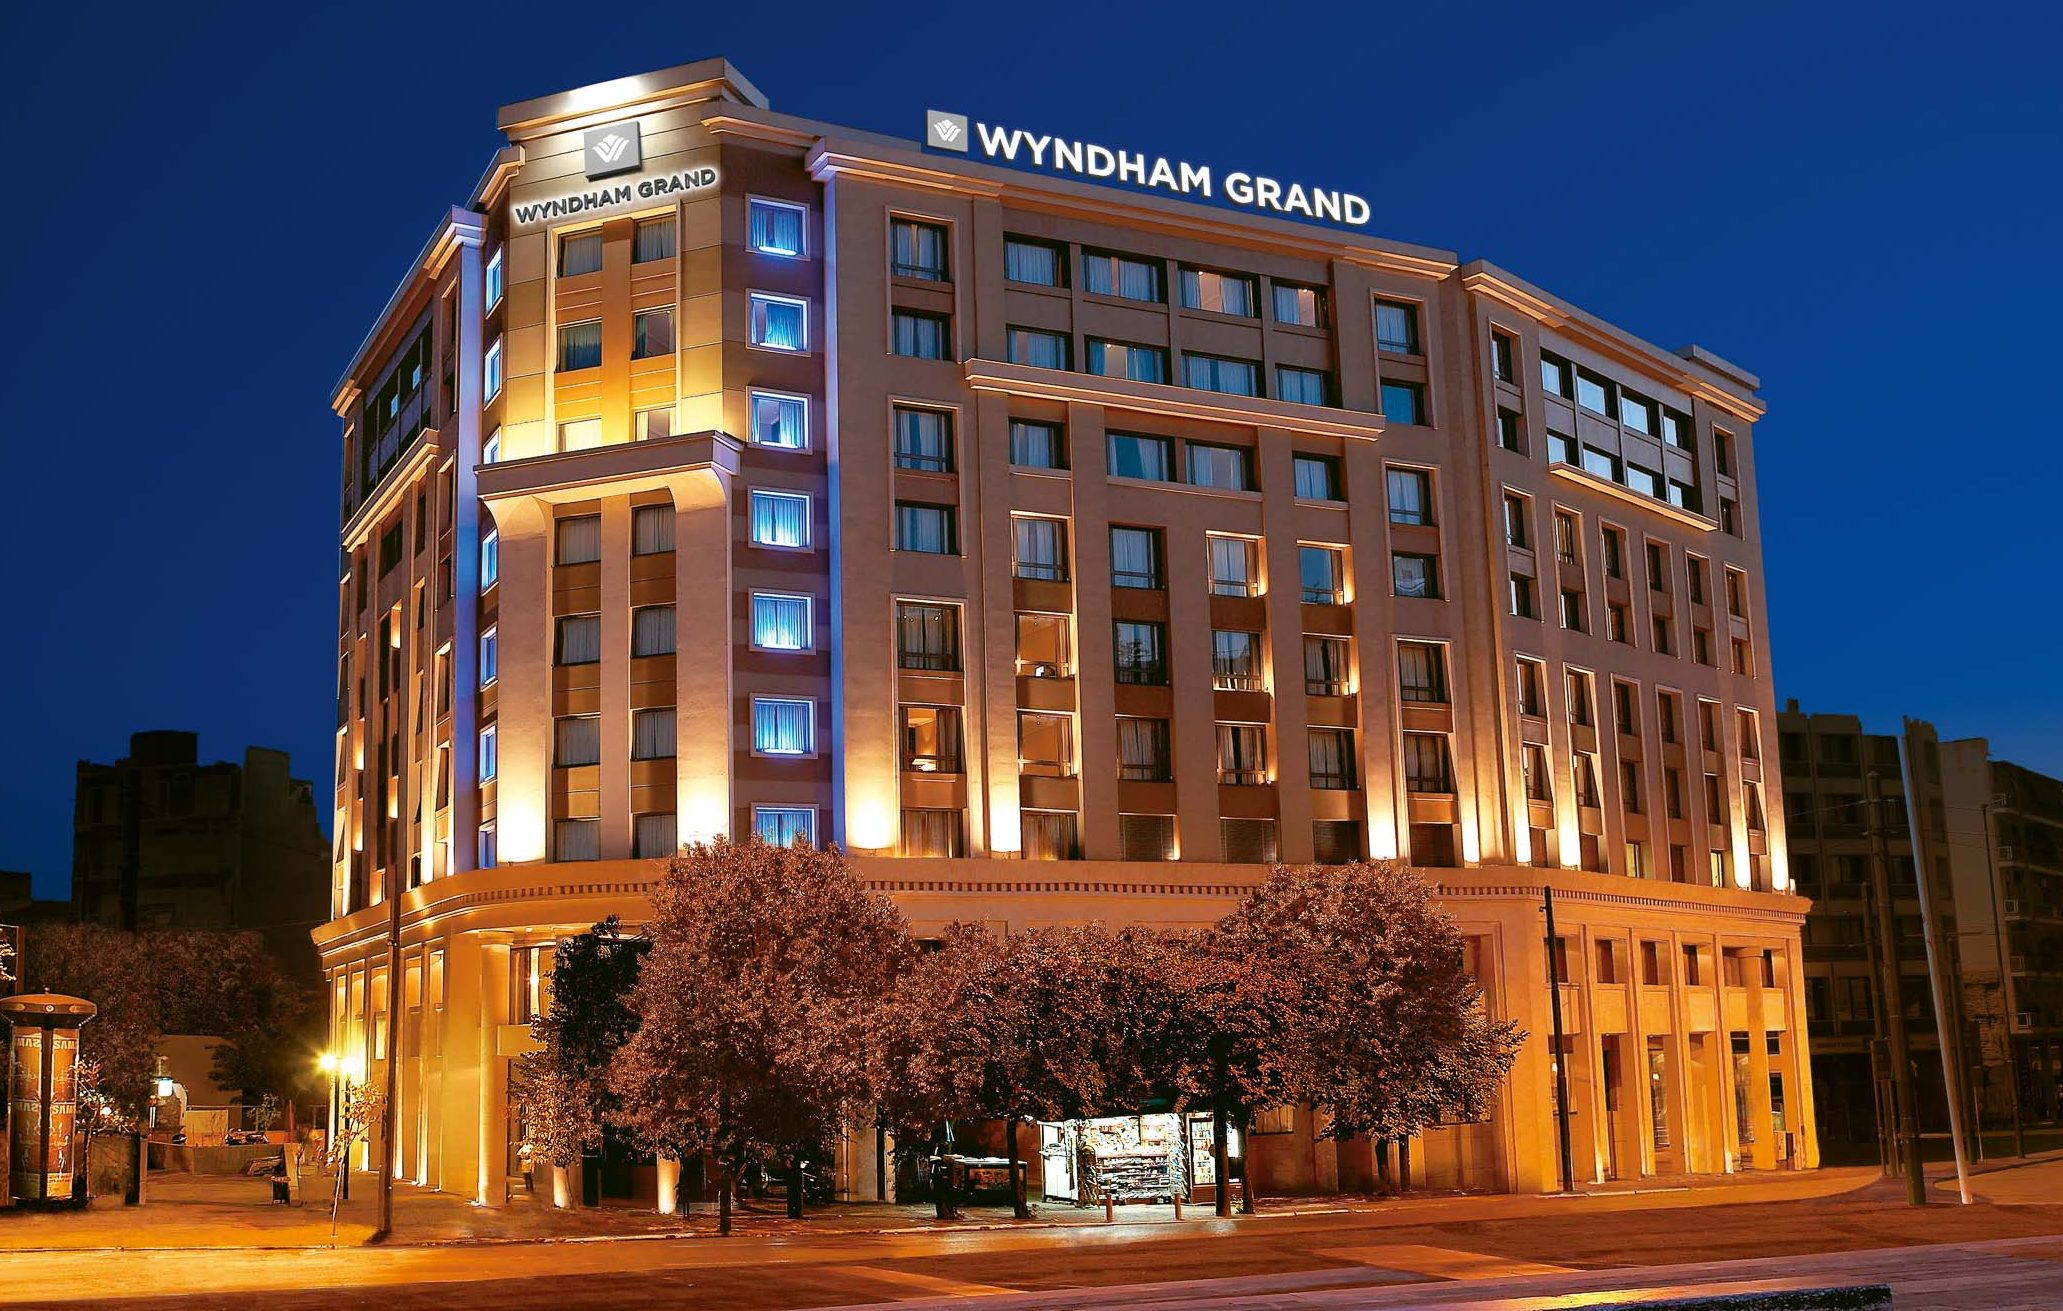 Wyndham Grand Athens night